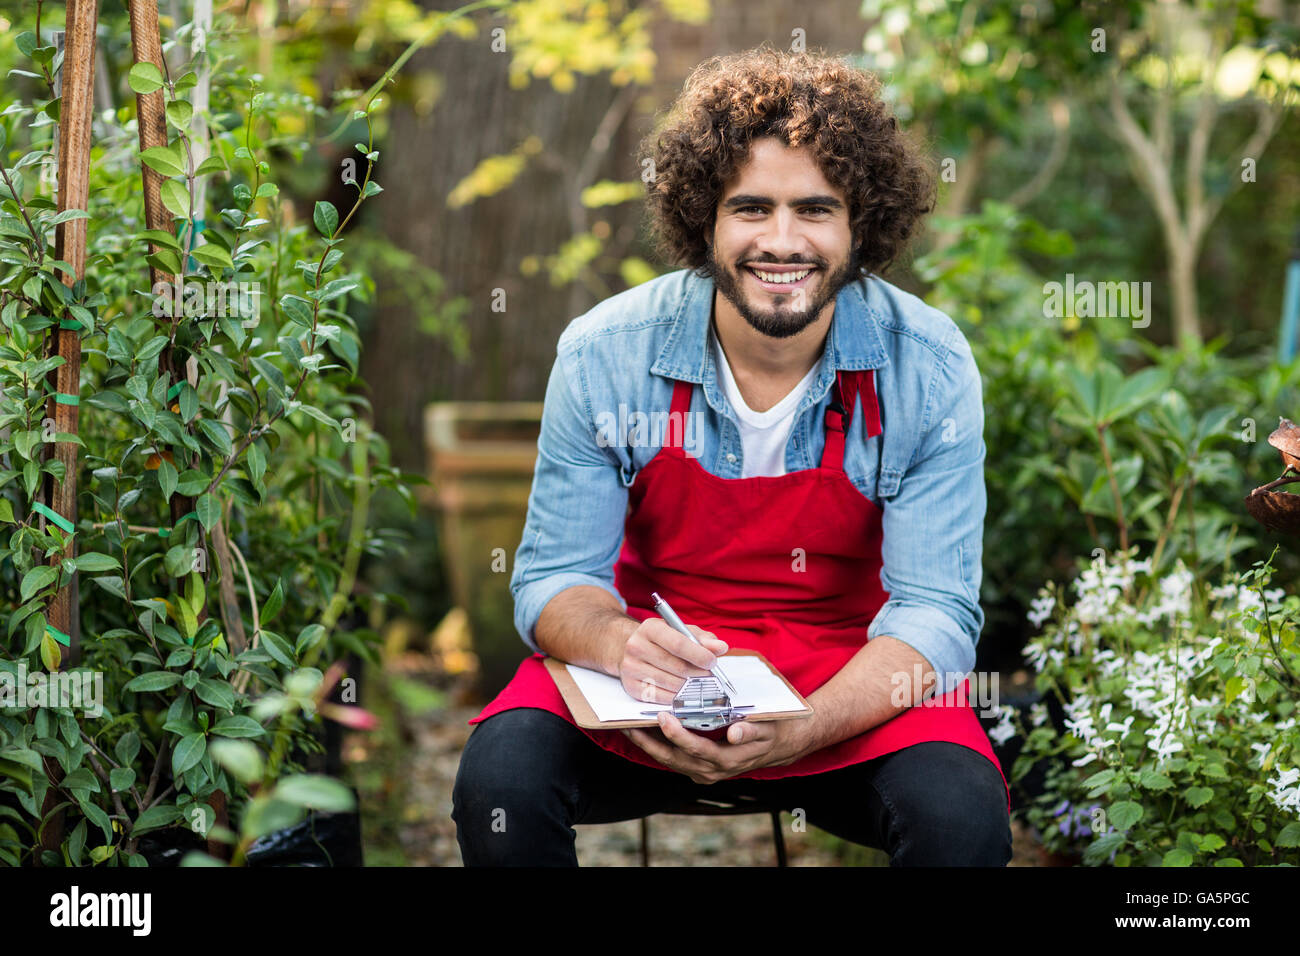 Male gardener writing on clipboard while sitting at greenhouse - Stock Image